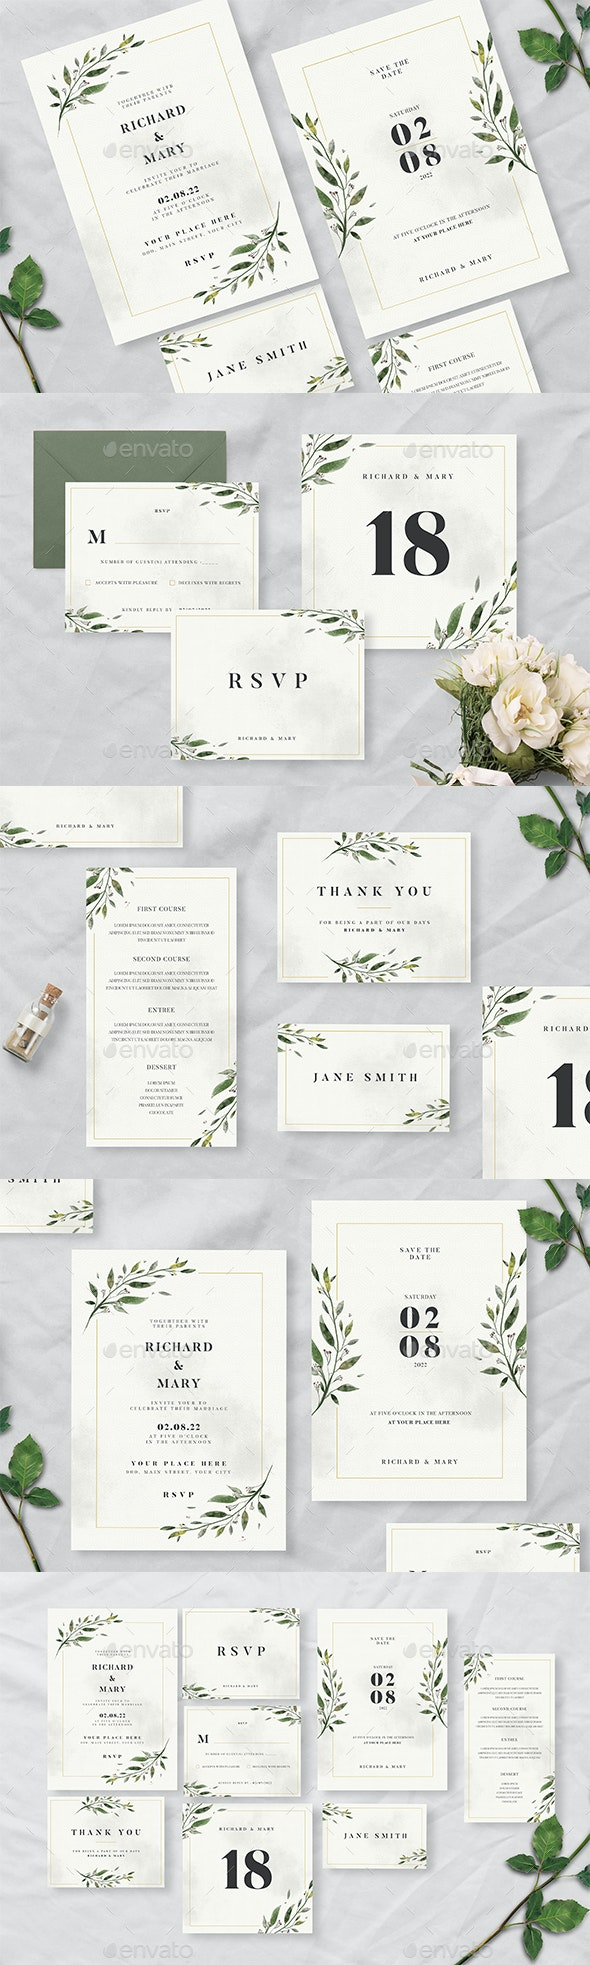 Watercolor Leaf Wedding Invitation Suite - Cards & Invites Print Templates